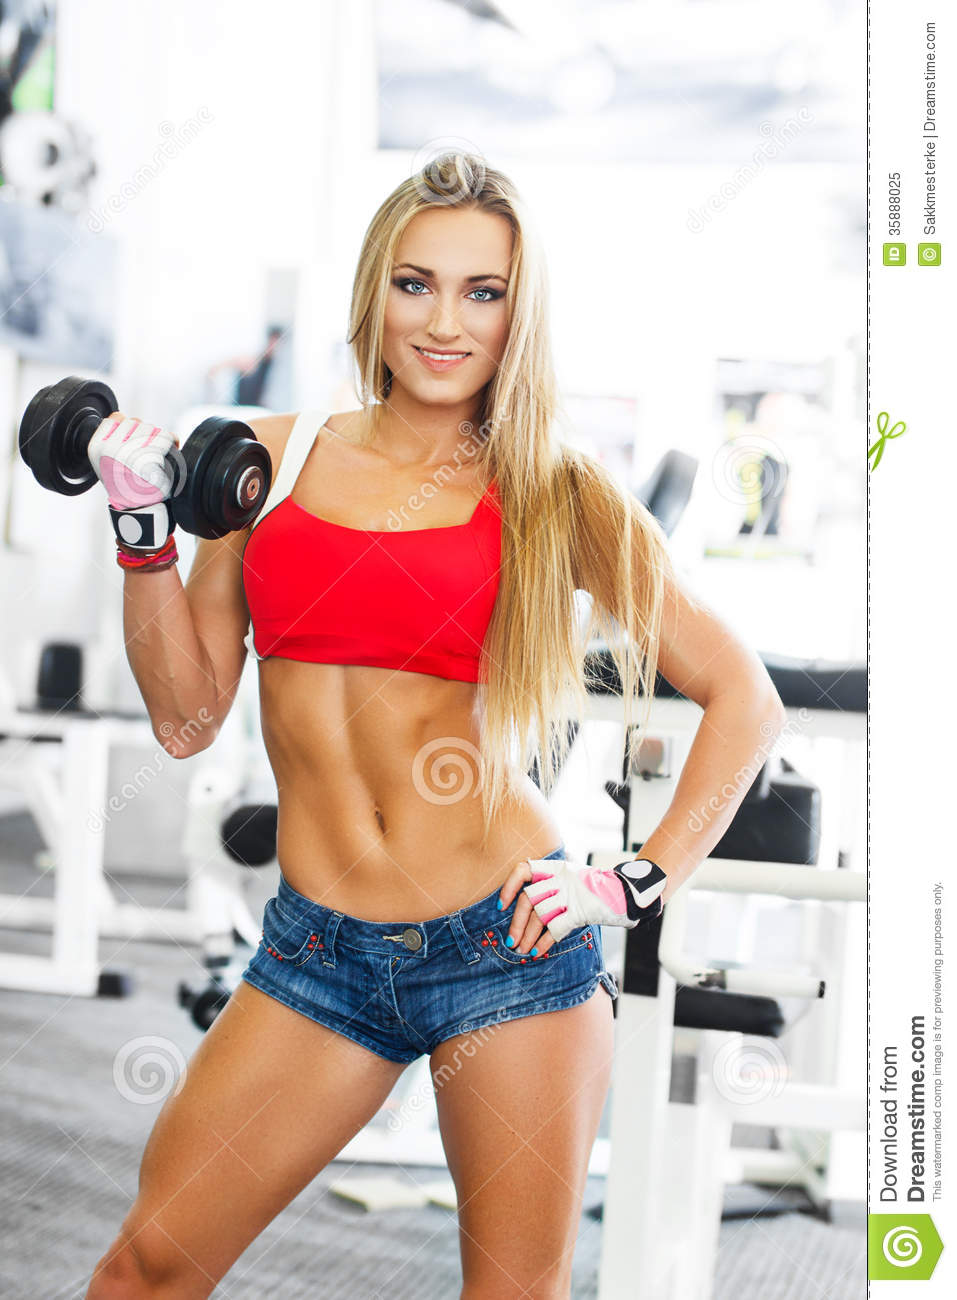 Clipart Fitness Free